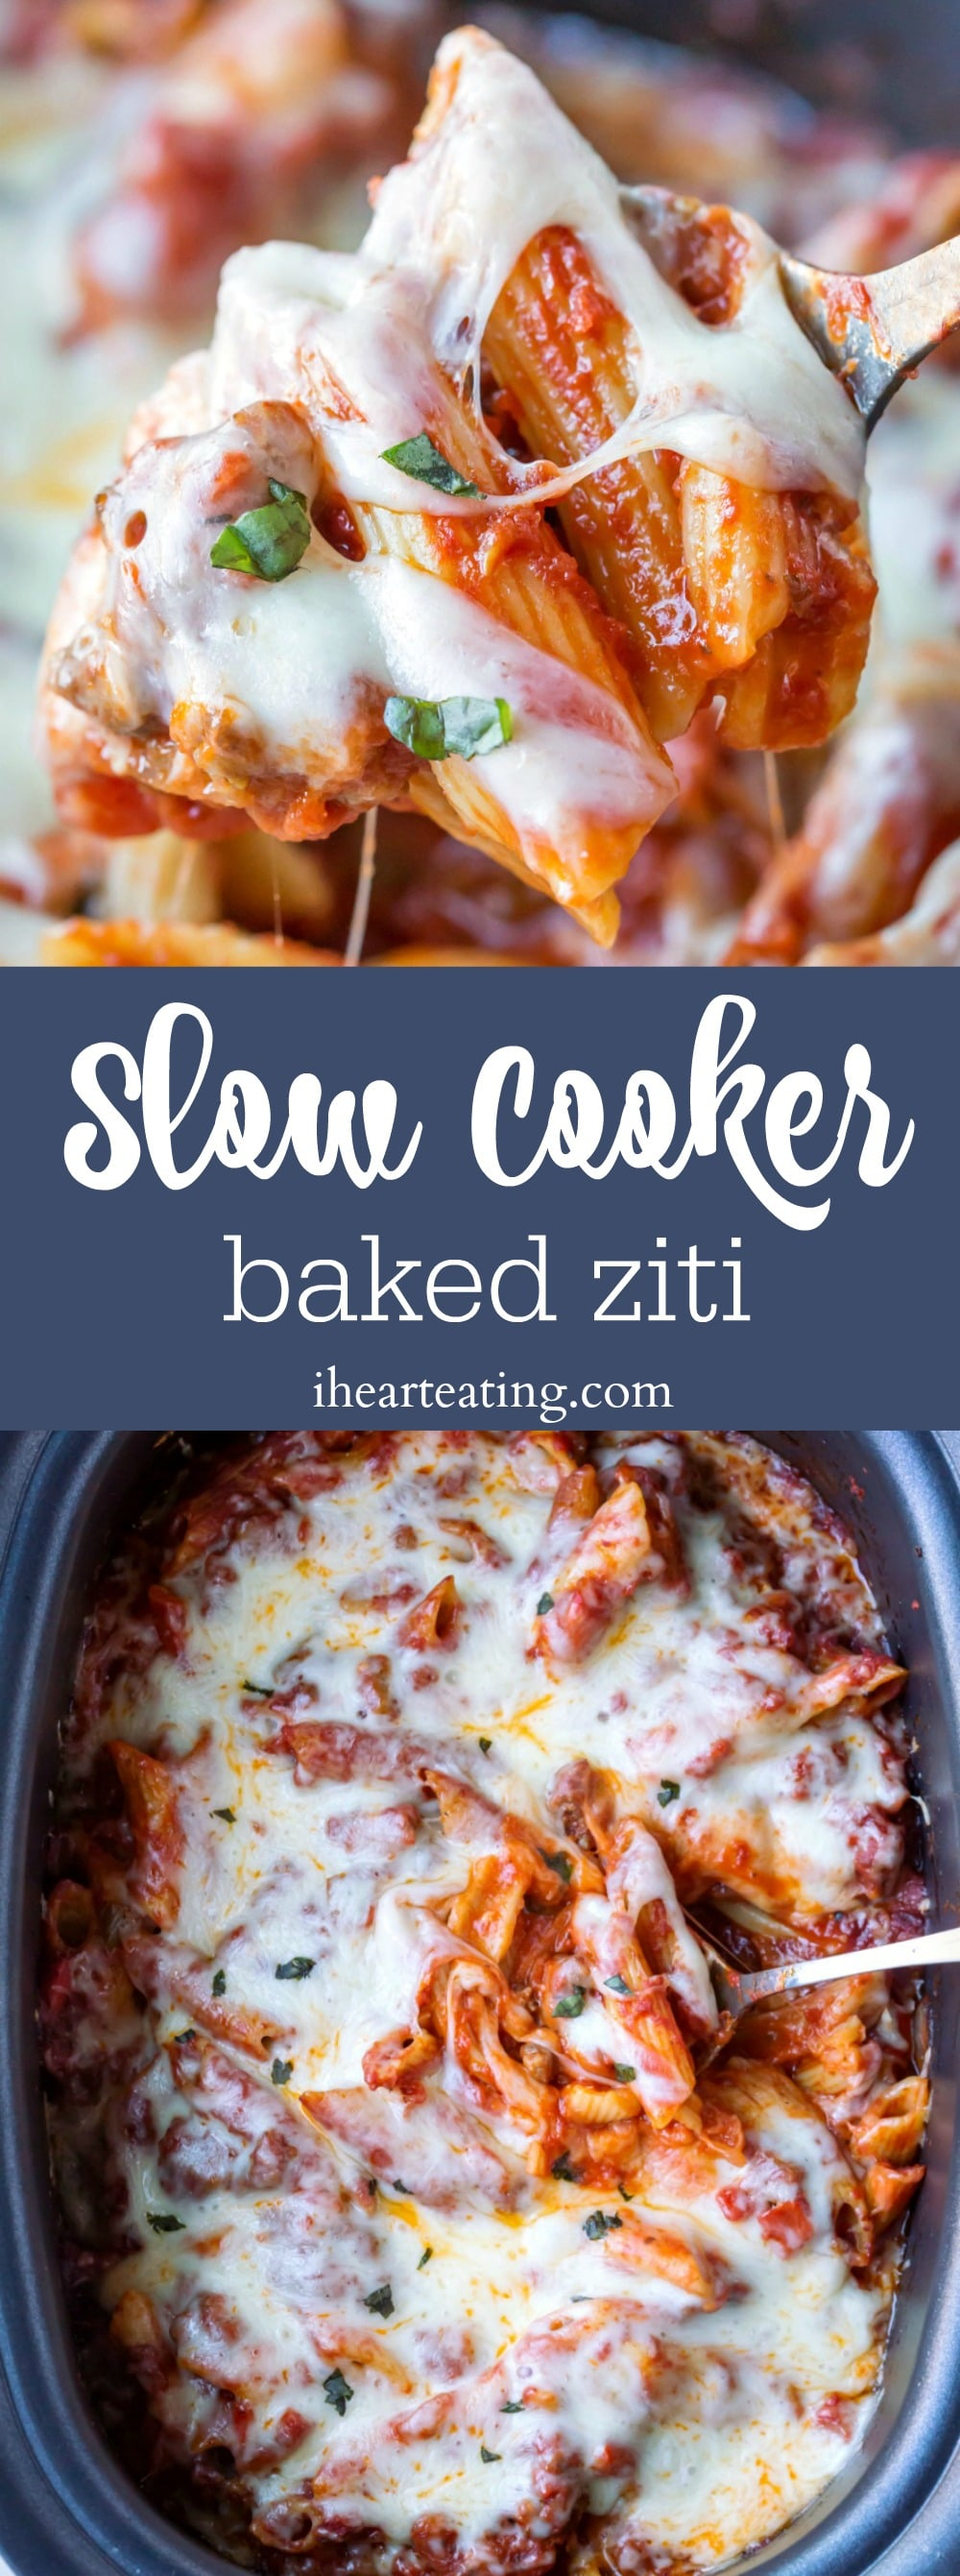 Slow Cooker Baked Ziti is an easy crock pot pasta dinner that's perfect for weeknight meals. The pasta cooks right in the sauce!